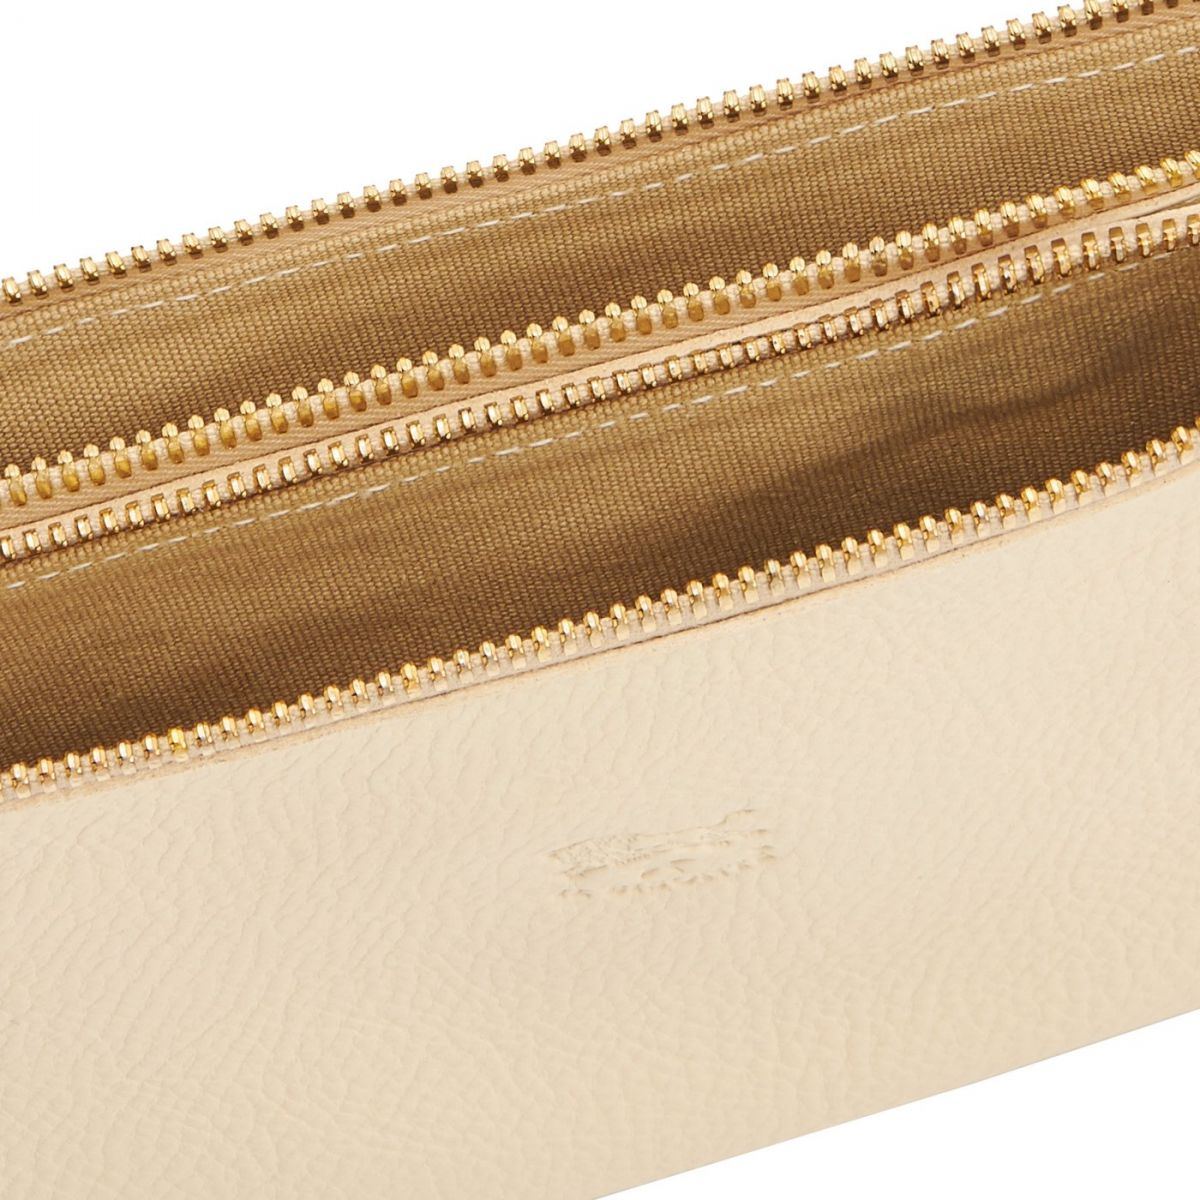 Women's Clutch Bag Talamone in Cowhide Double Leather BCL022 color Ivory | Details